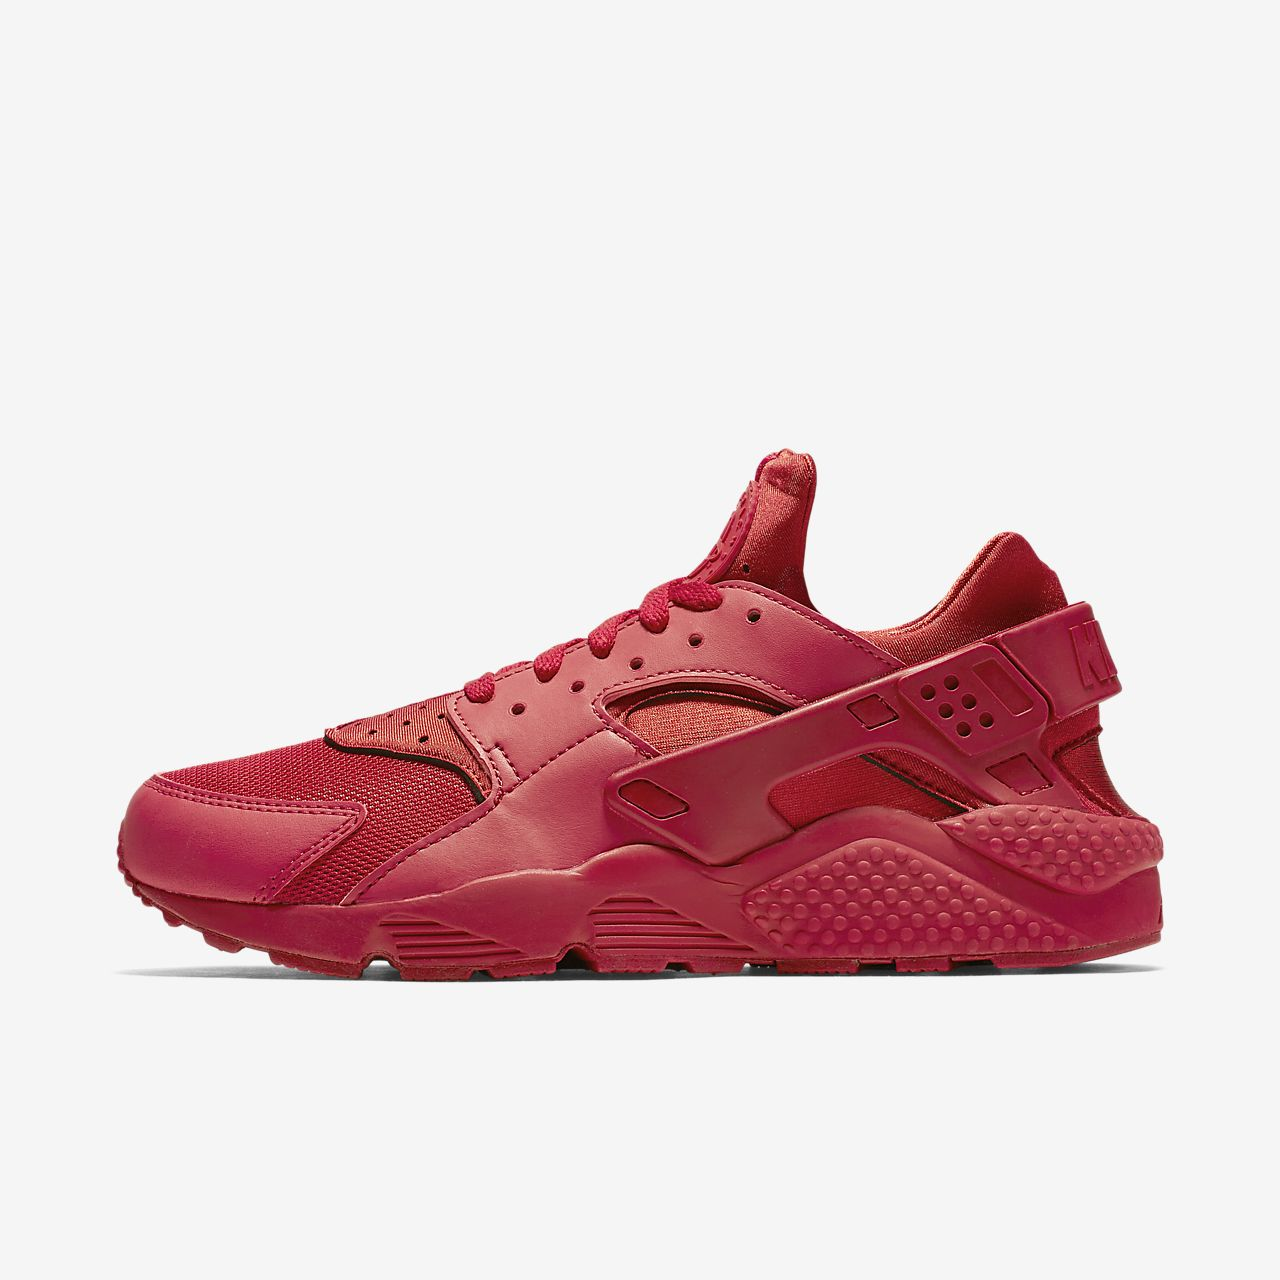 new product f4f88 4347d ... Nike Air Huarache Men s Shoe